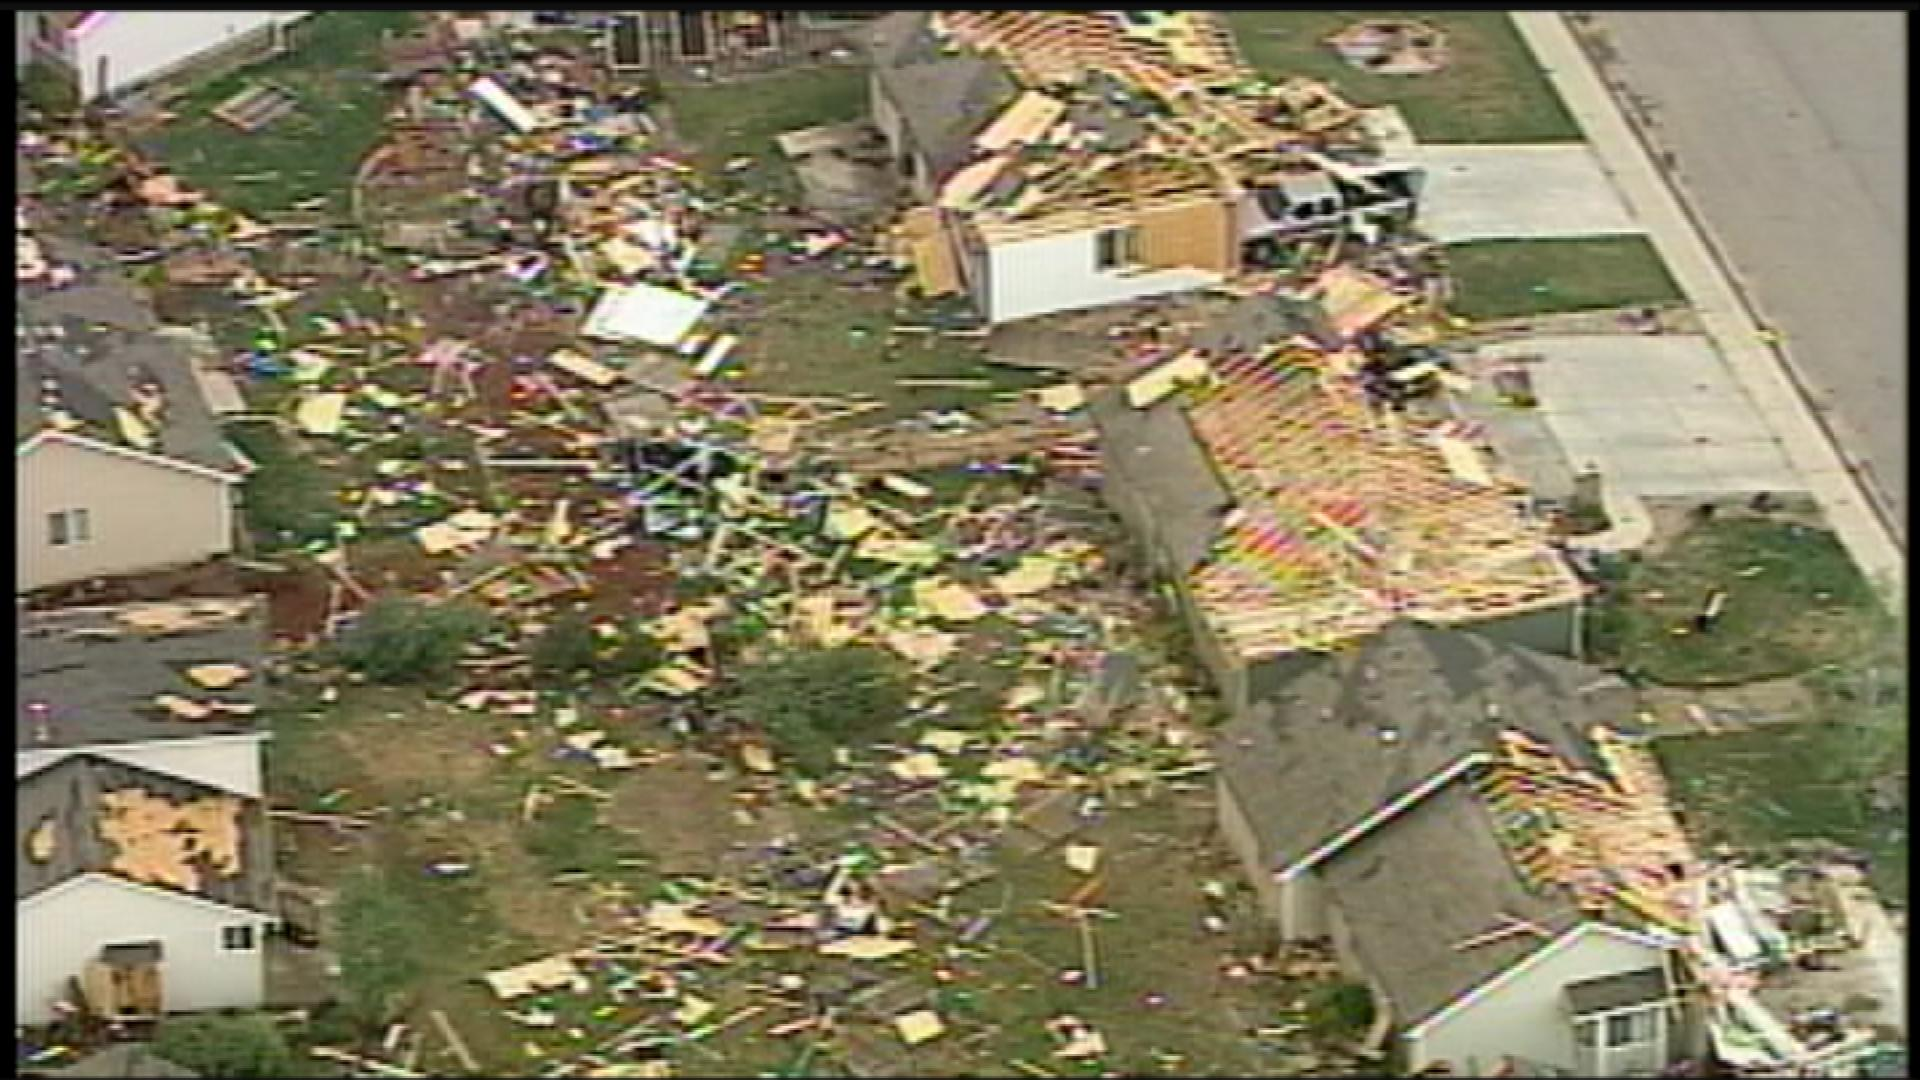 Hundreds of homes were damaged or destroyed when a tornado cut a 39-mile path through Northern Colorado on May 22, 2008. (credit: CBS)